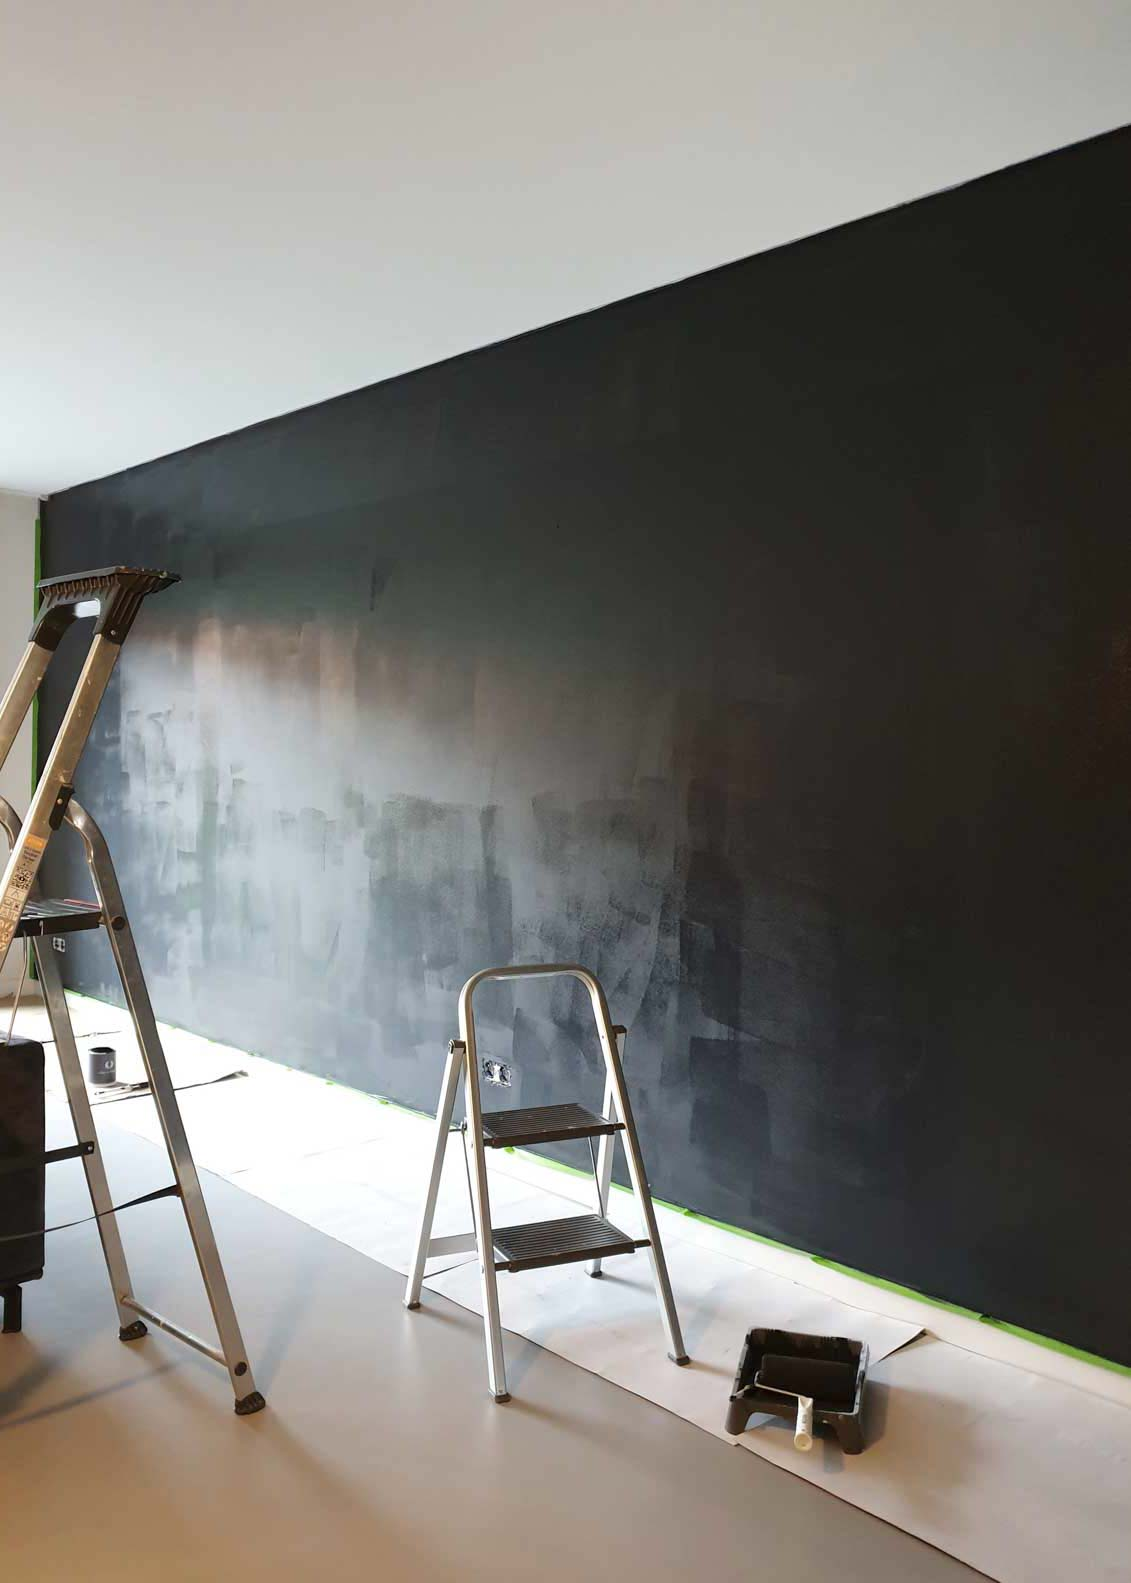 After picture with wall painted in Marrakech Walls Slate grey with a ladder in front